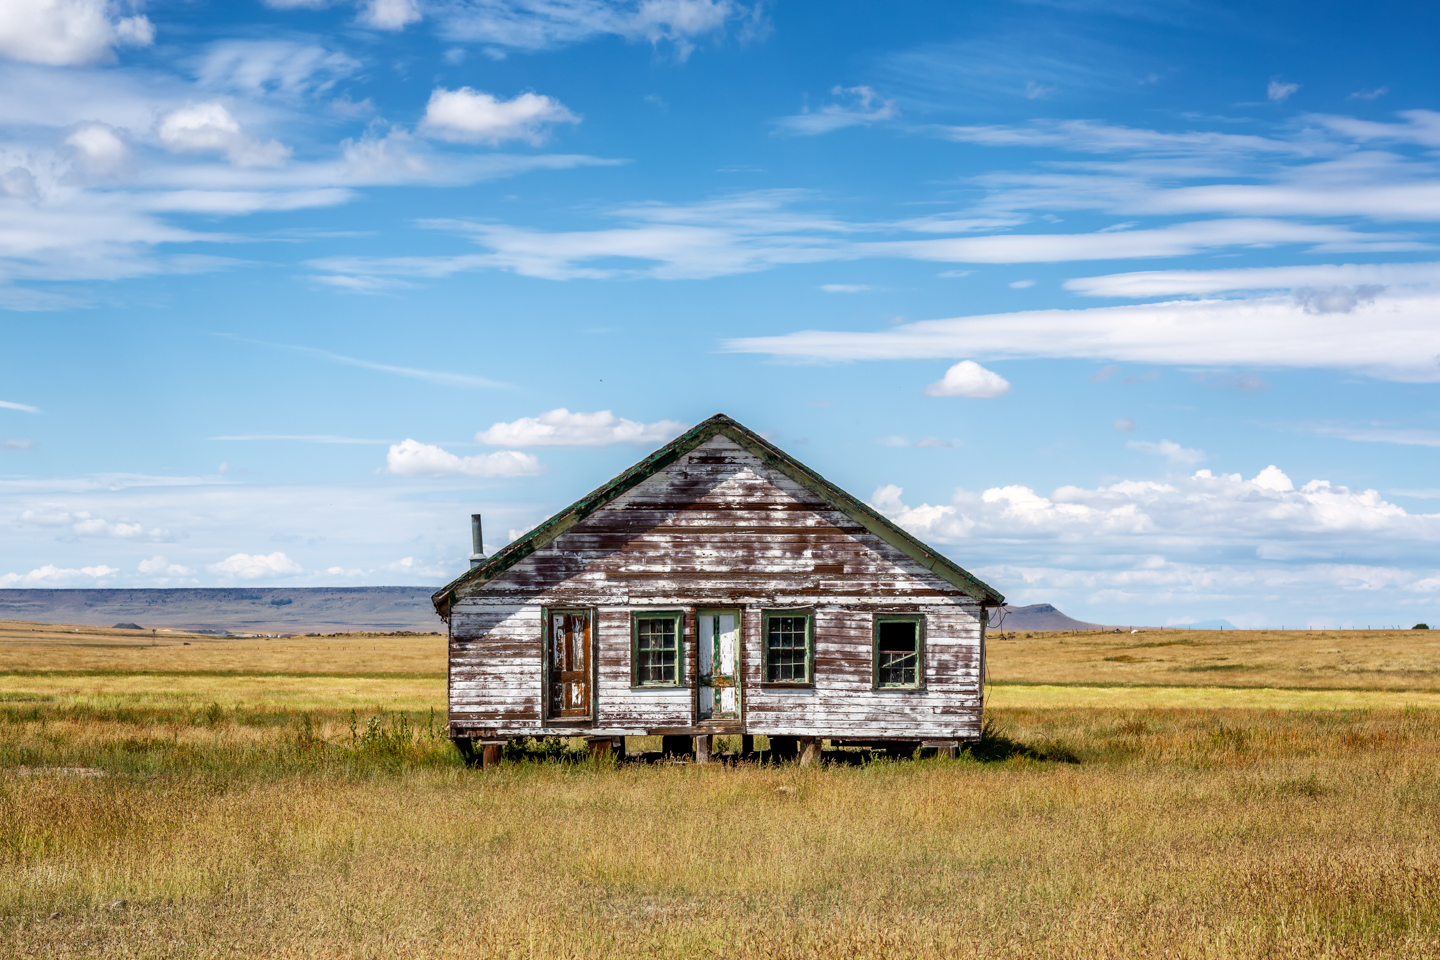 Color, Photograph, Southwest, Rural. Rustic, Abandoned House, Capulin Mountain, New Mexico, September 1, 2013